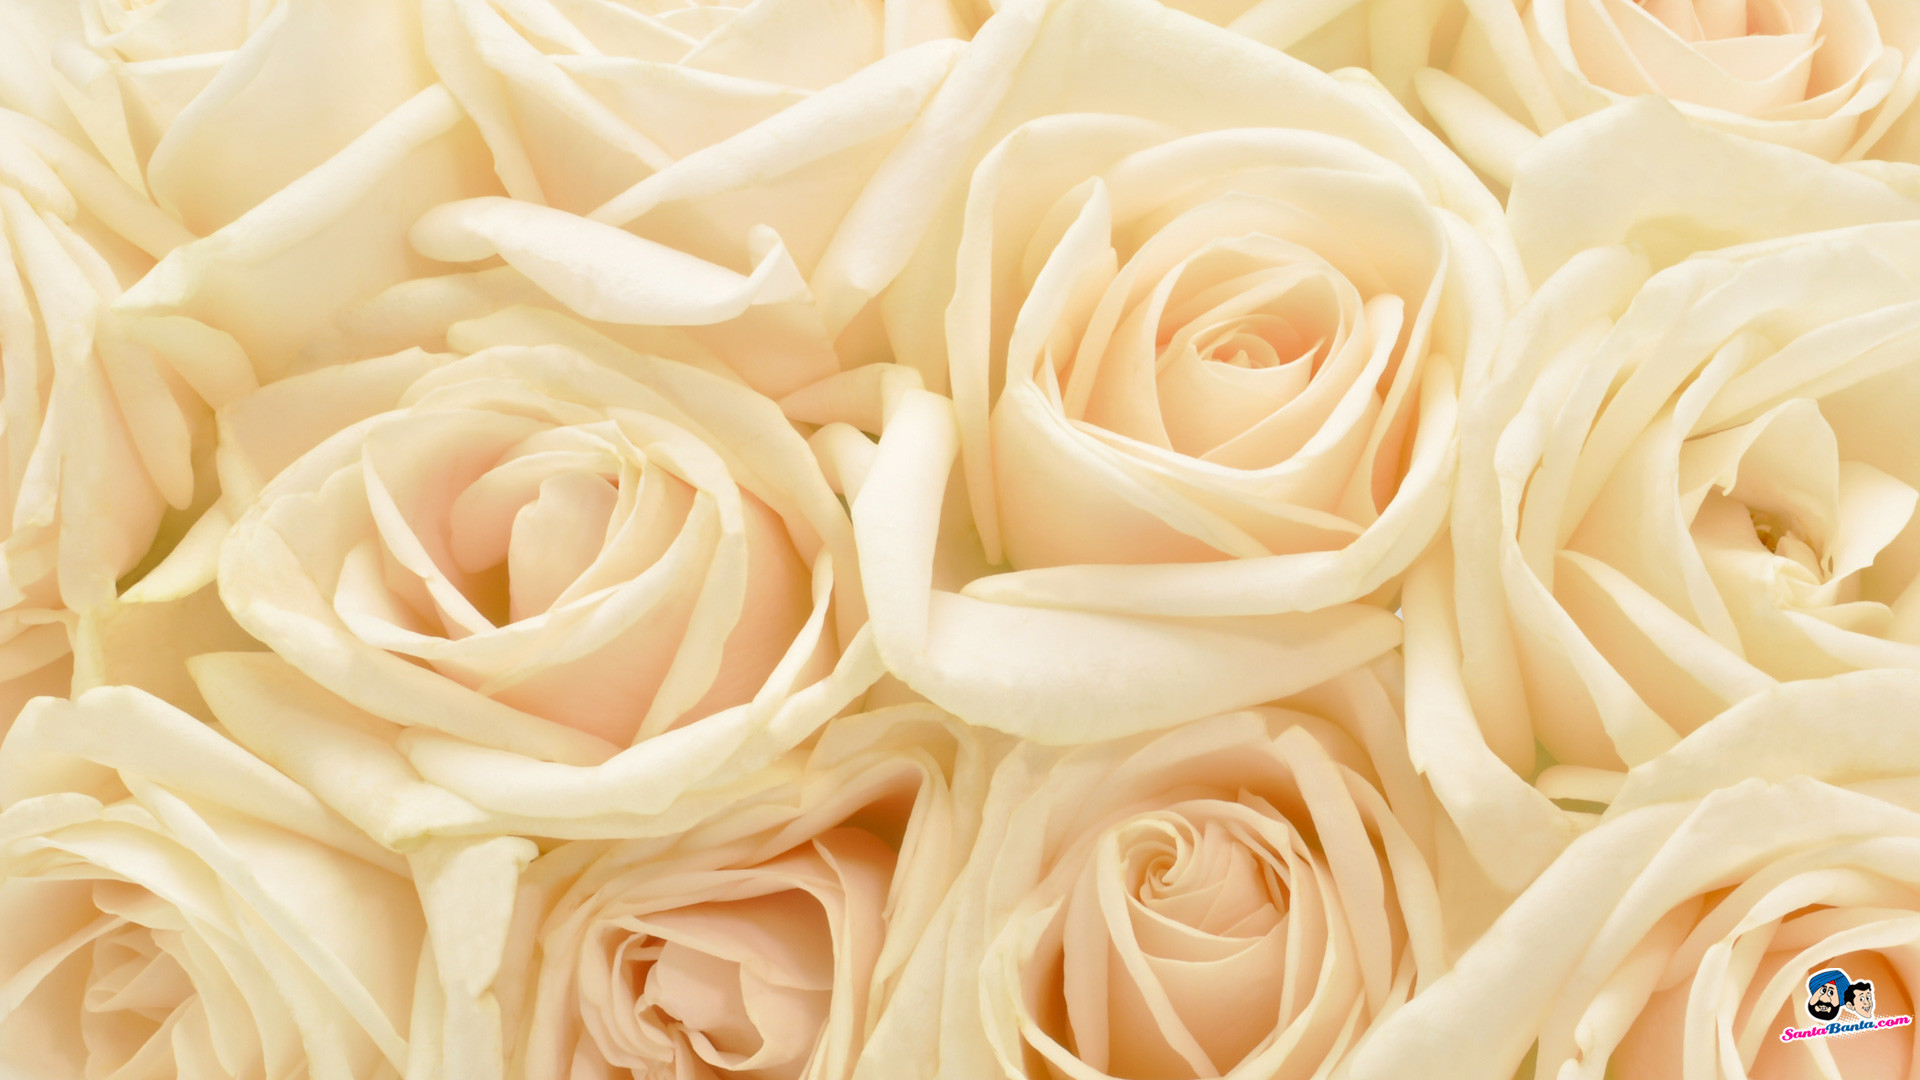 Res: 1920x1080, White Rose Red Roses Wallpapers For Iphone 5, HQ Backgrounds | HD .